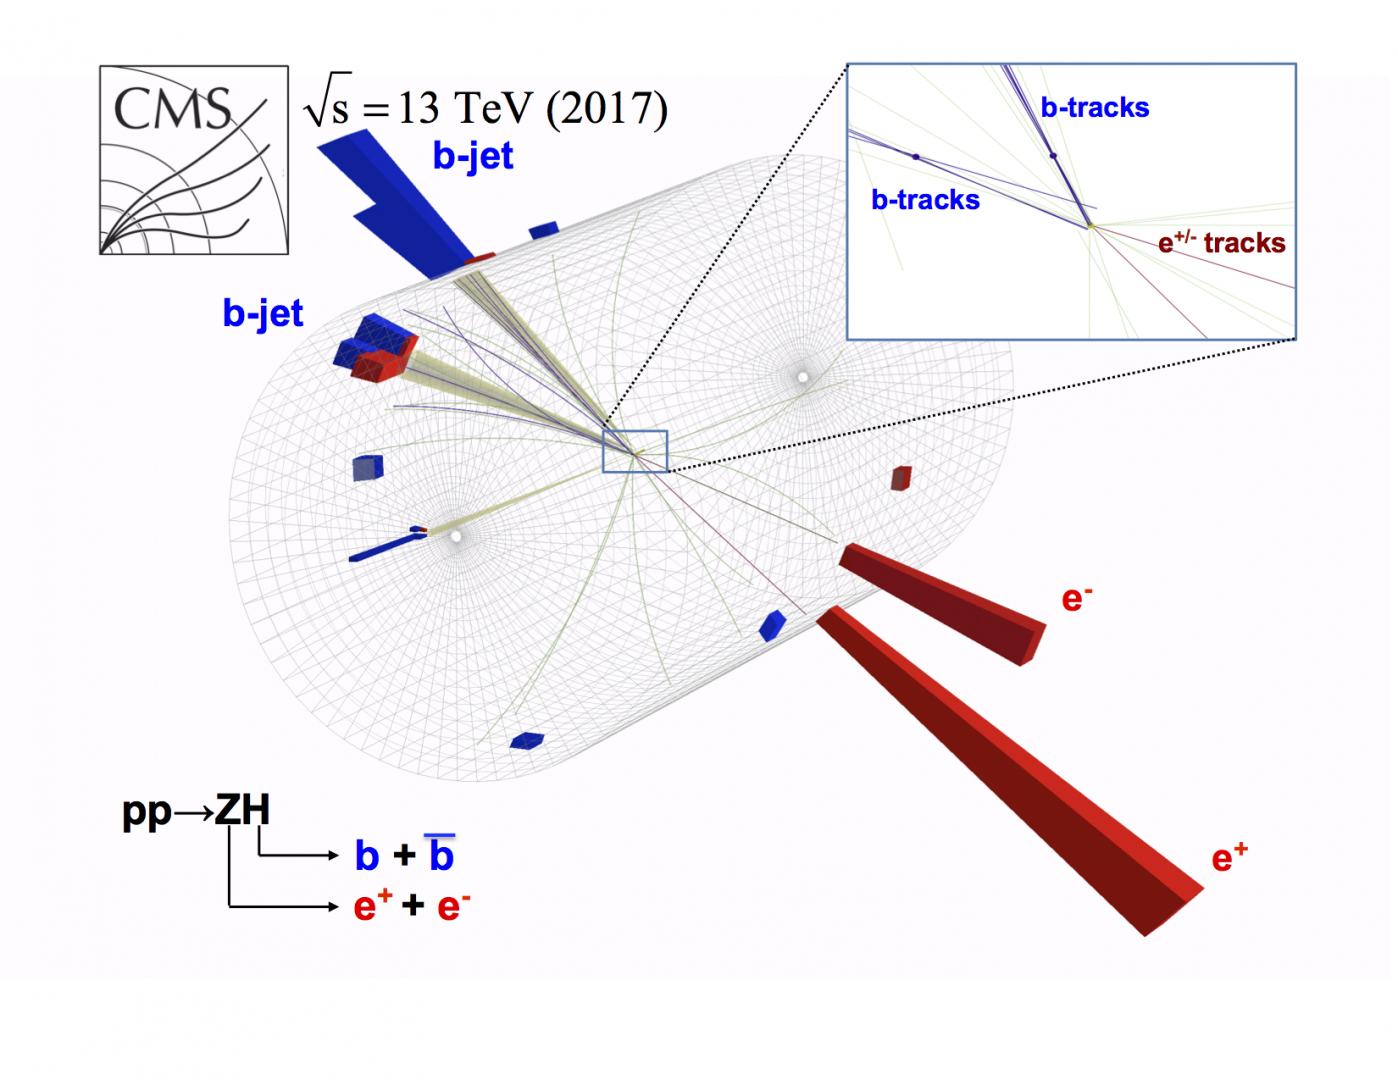 Image representing a particle collision in the CMS detector.